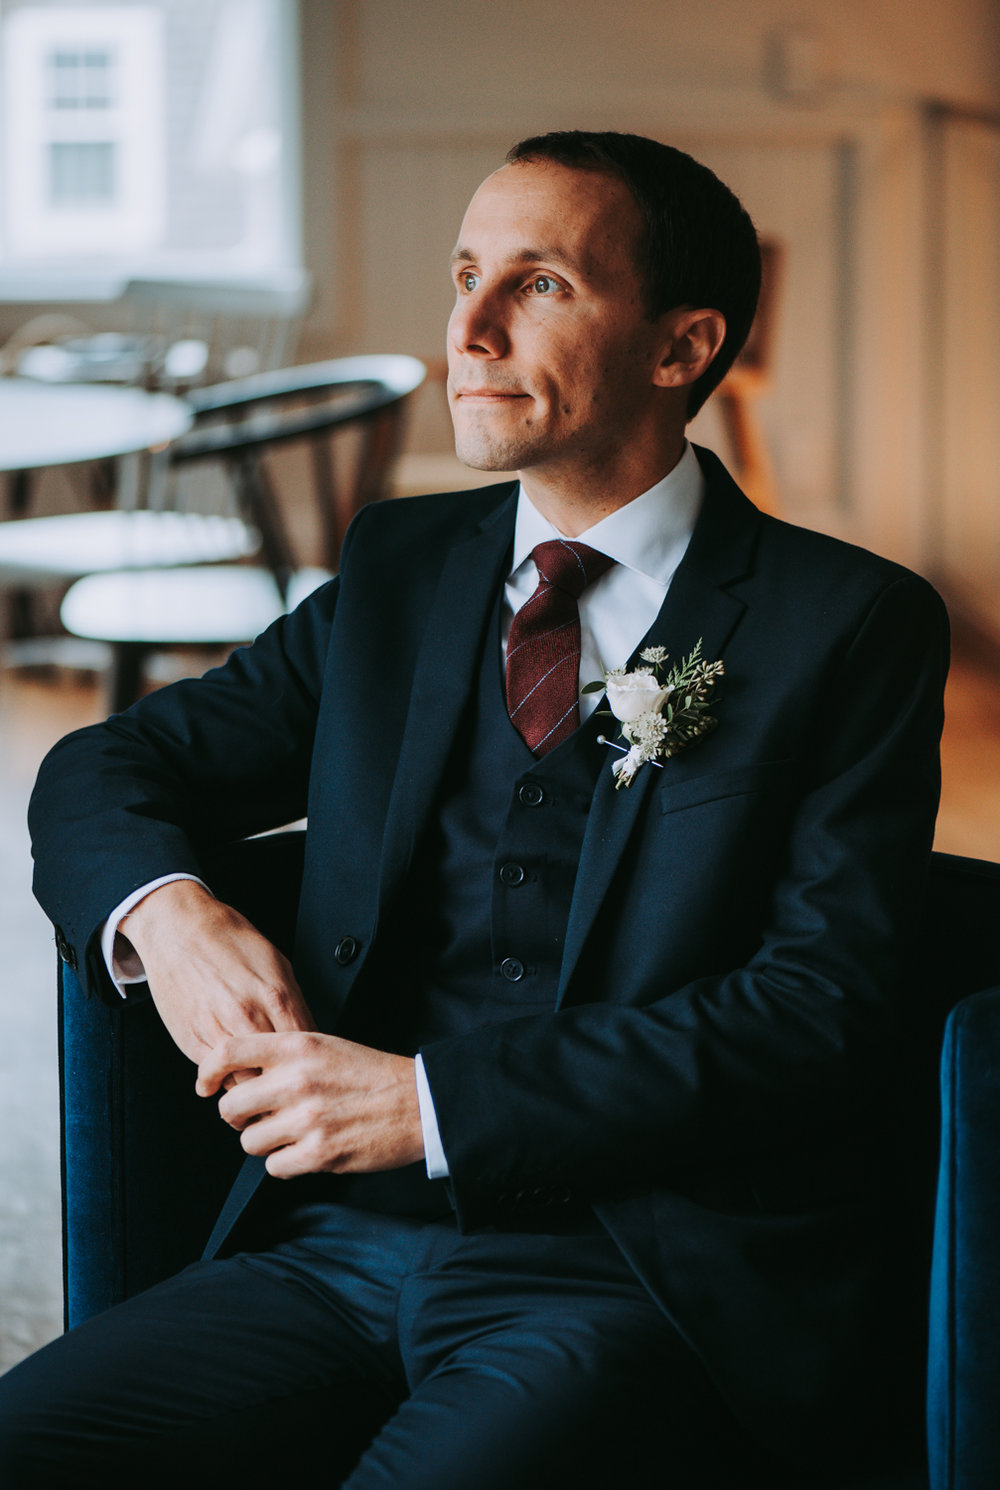 len_lynne_wedding_groom_portrait_edgartown-1679.jpg